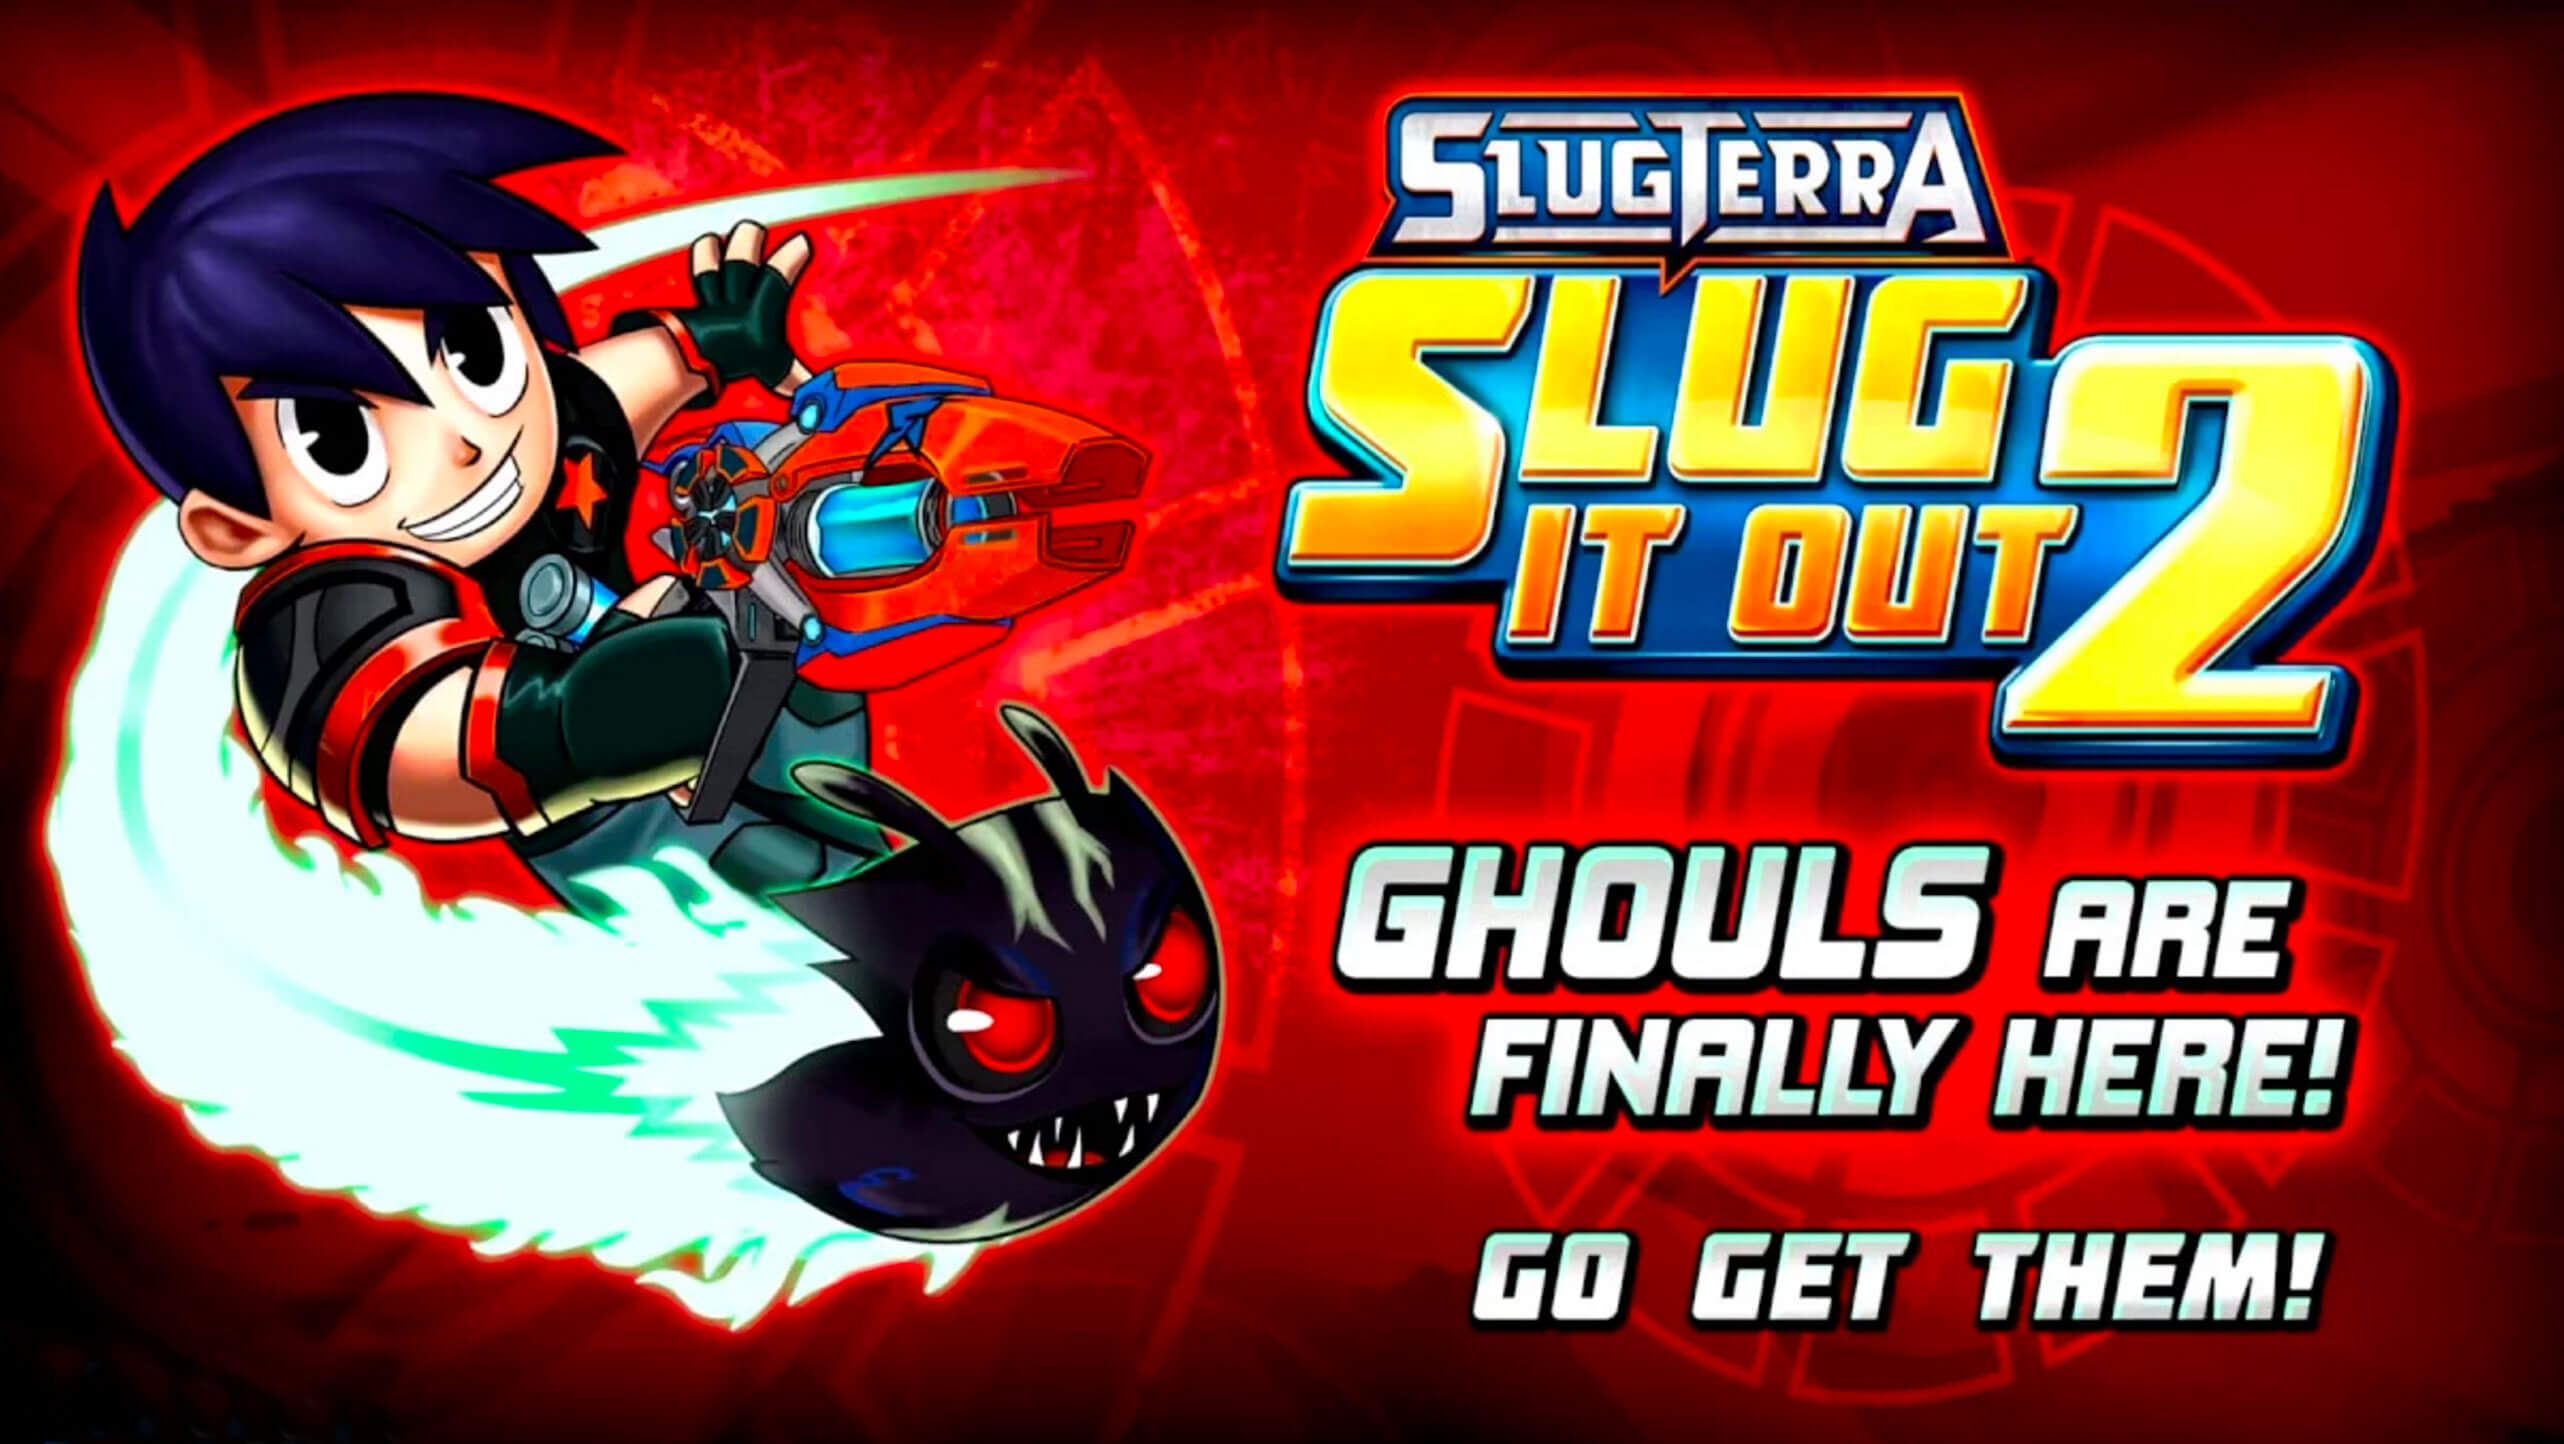 Slugterra Slug It Out! 2